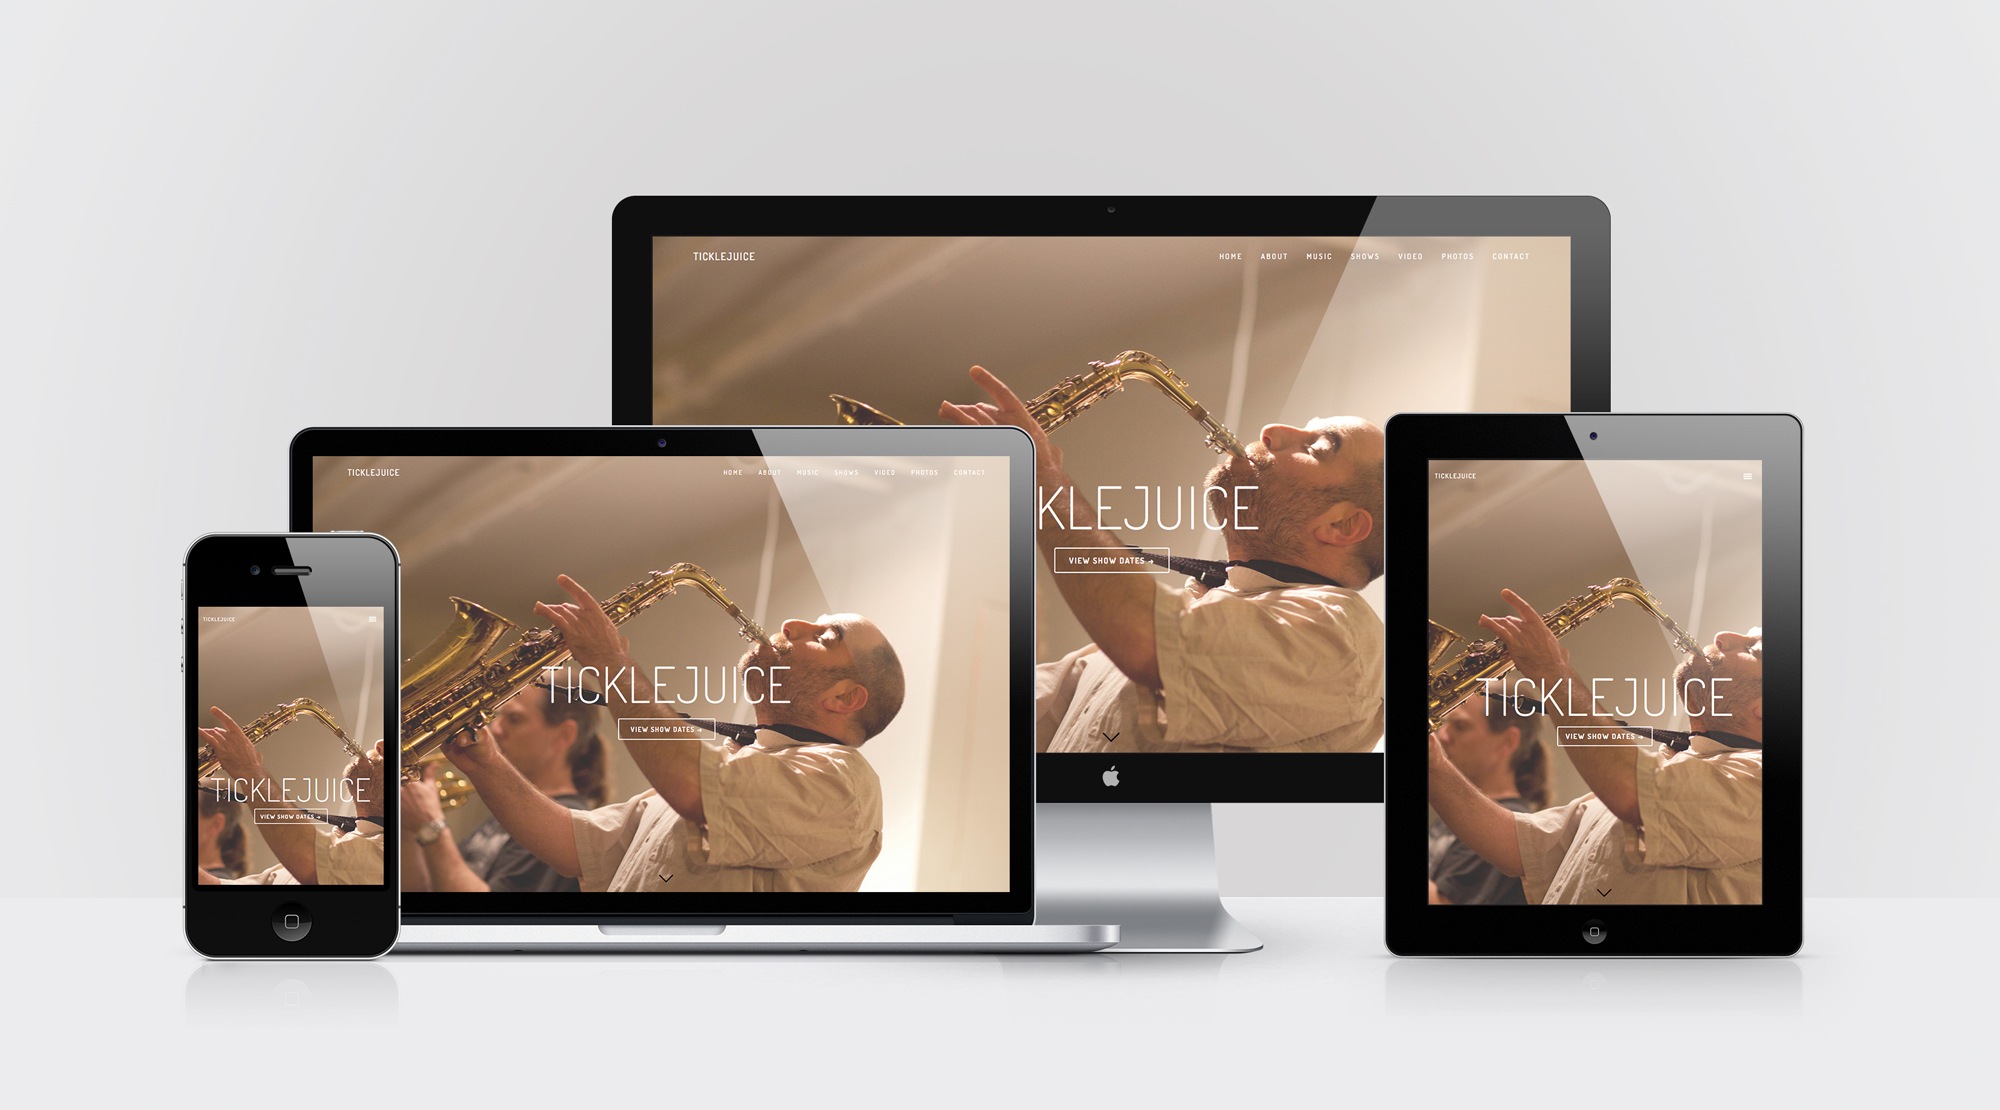 Device Mockups of Ticklejuice band website design by Geena Matuson @geenamatuson #thegirlmirage